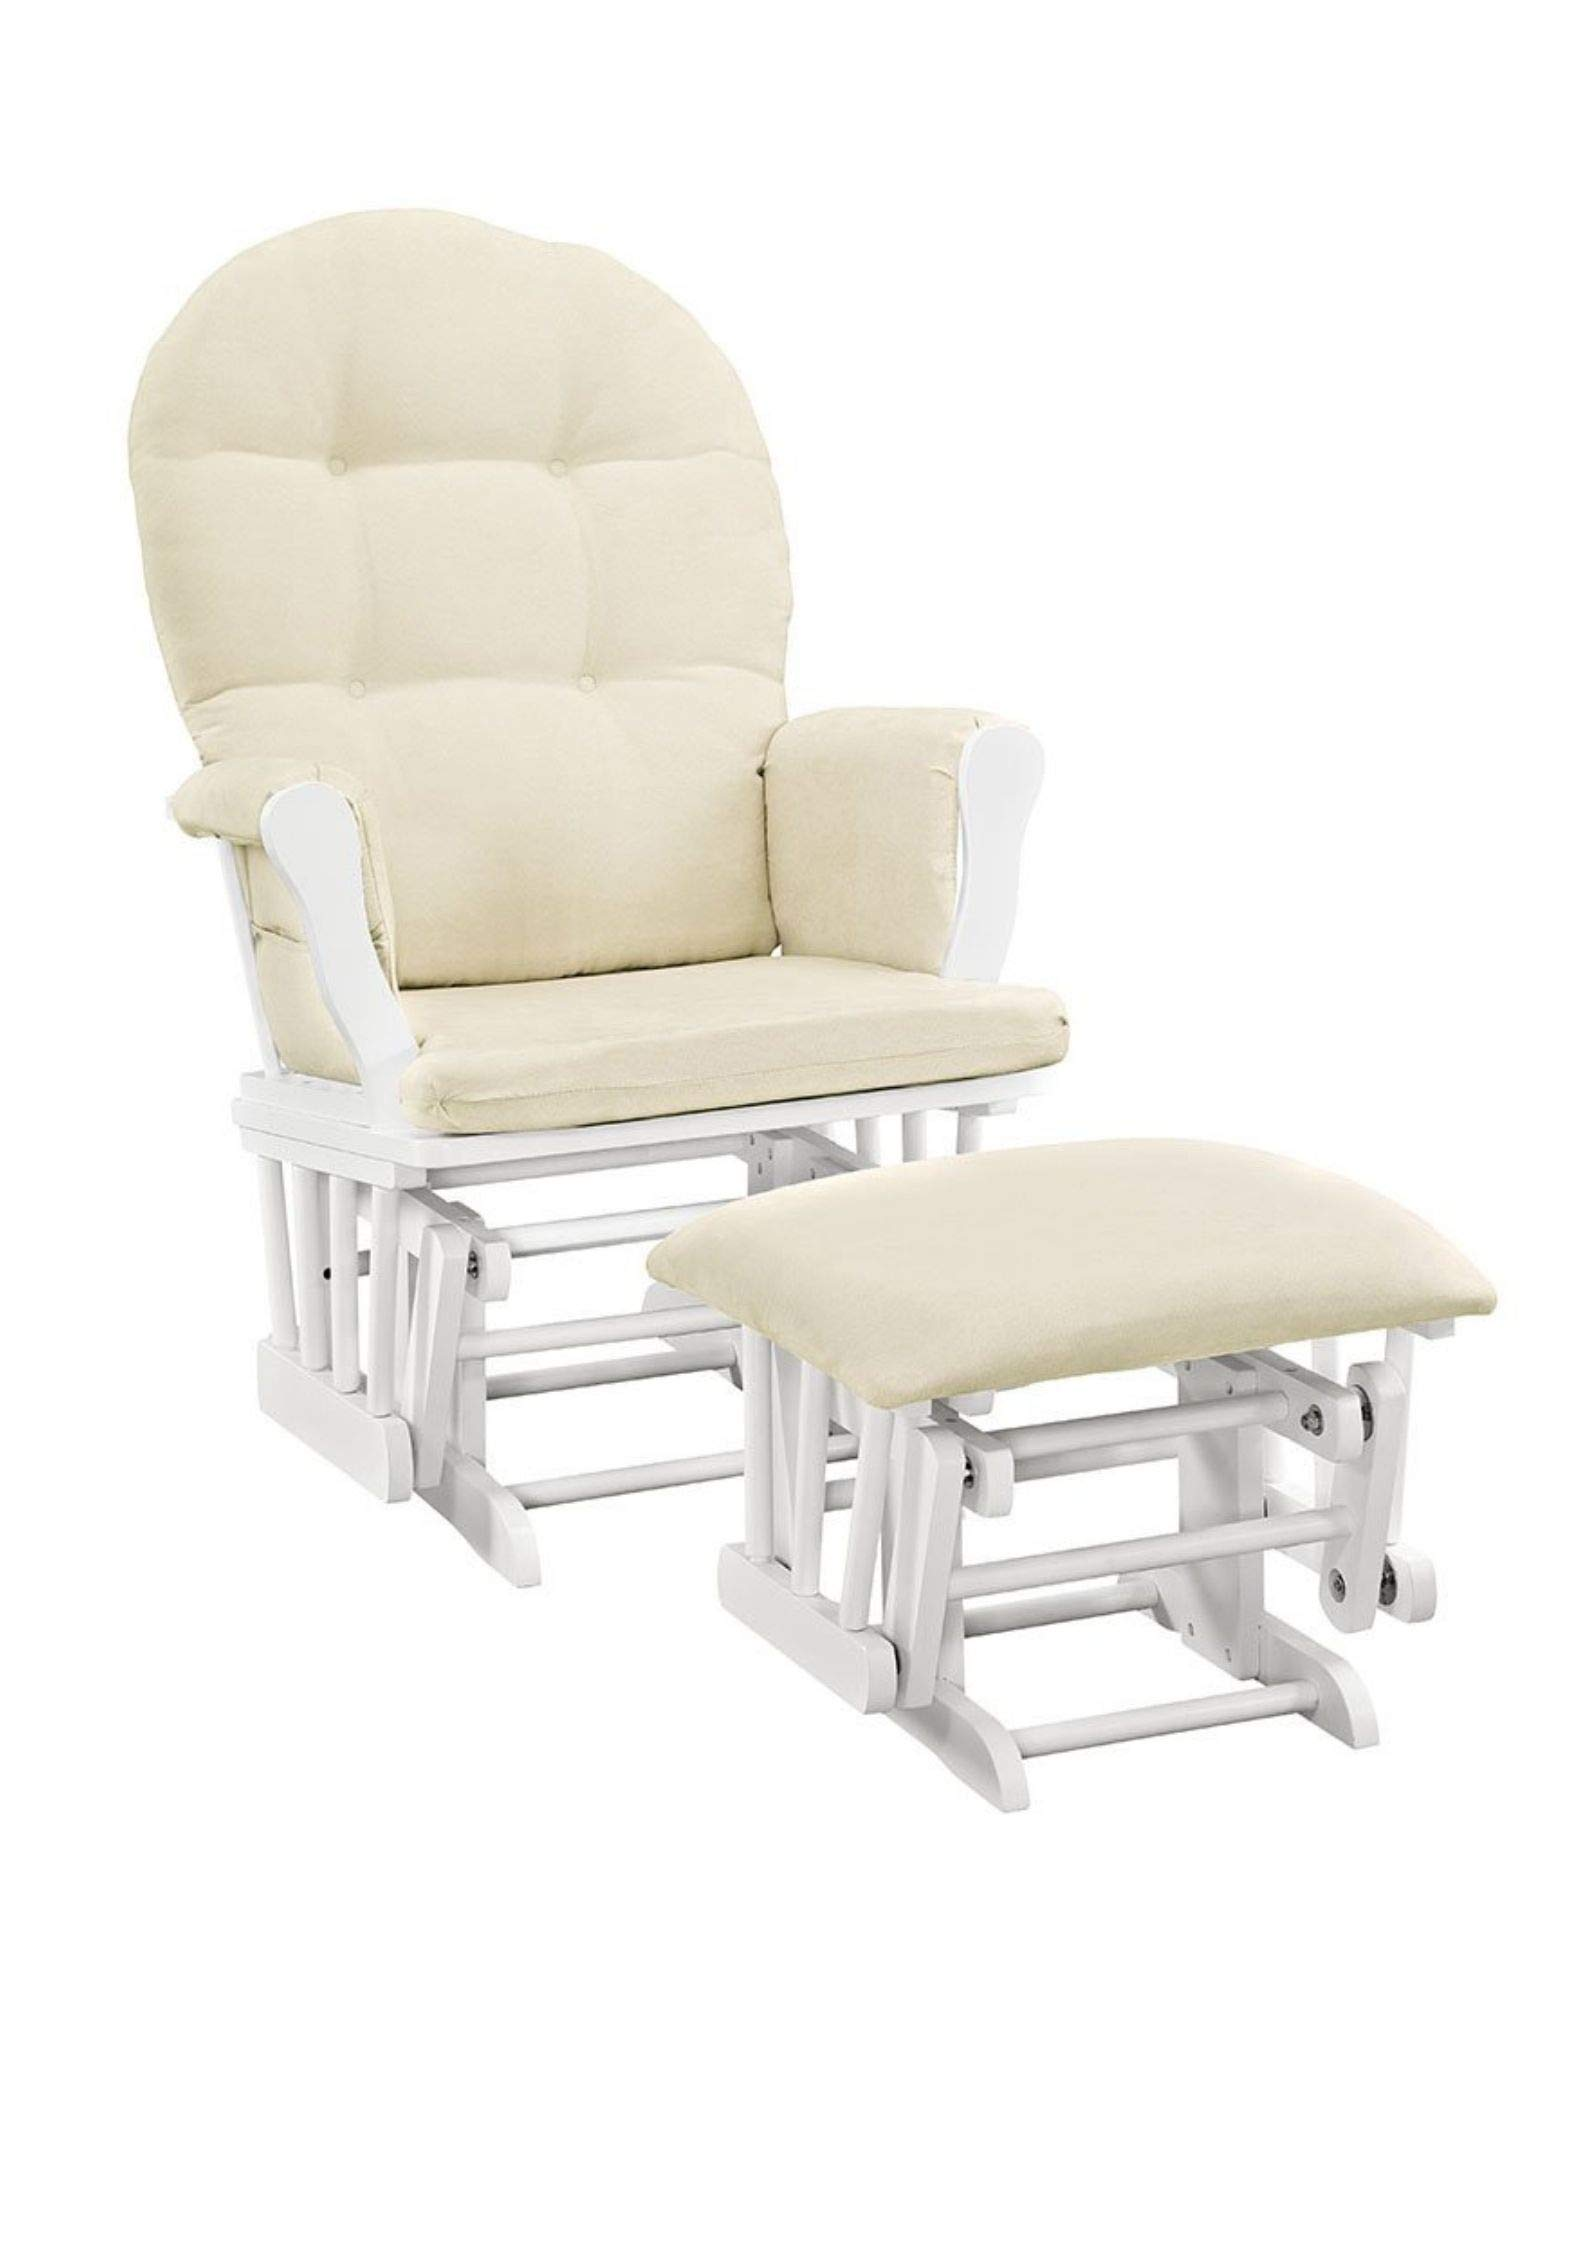 Angel Line Windsor Glider and Ottoman White Finish and Beige Cushions (1 Pack,White with Beige) by Angel Line